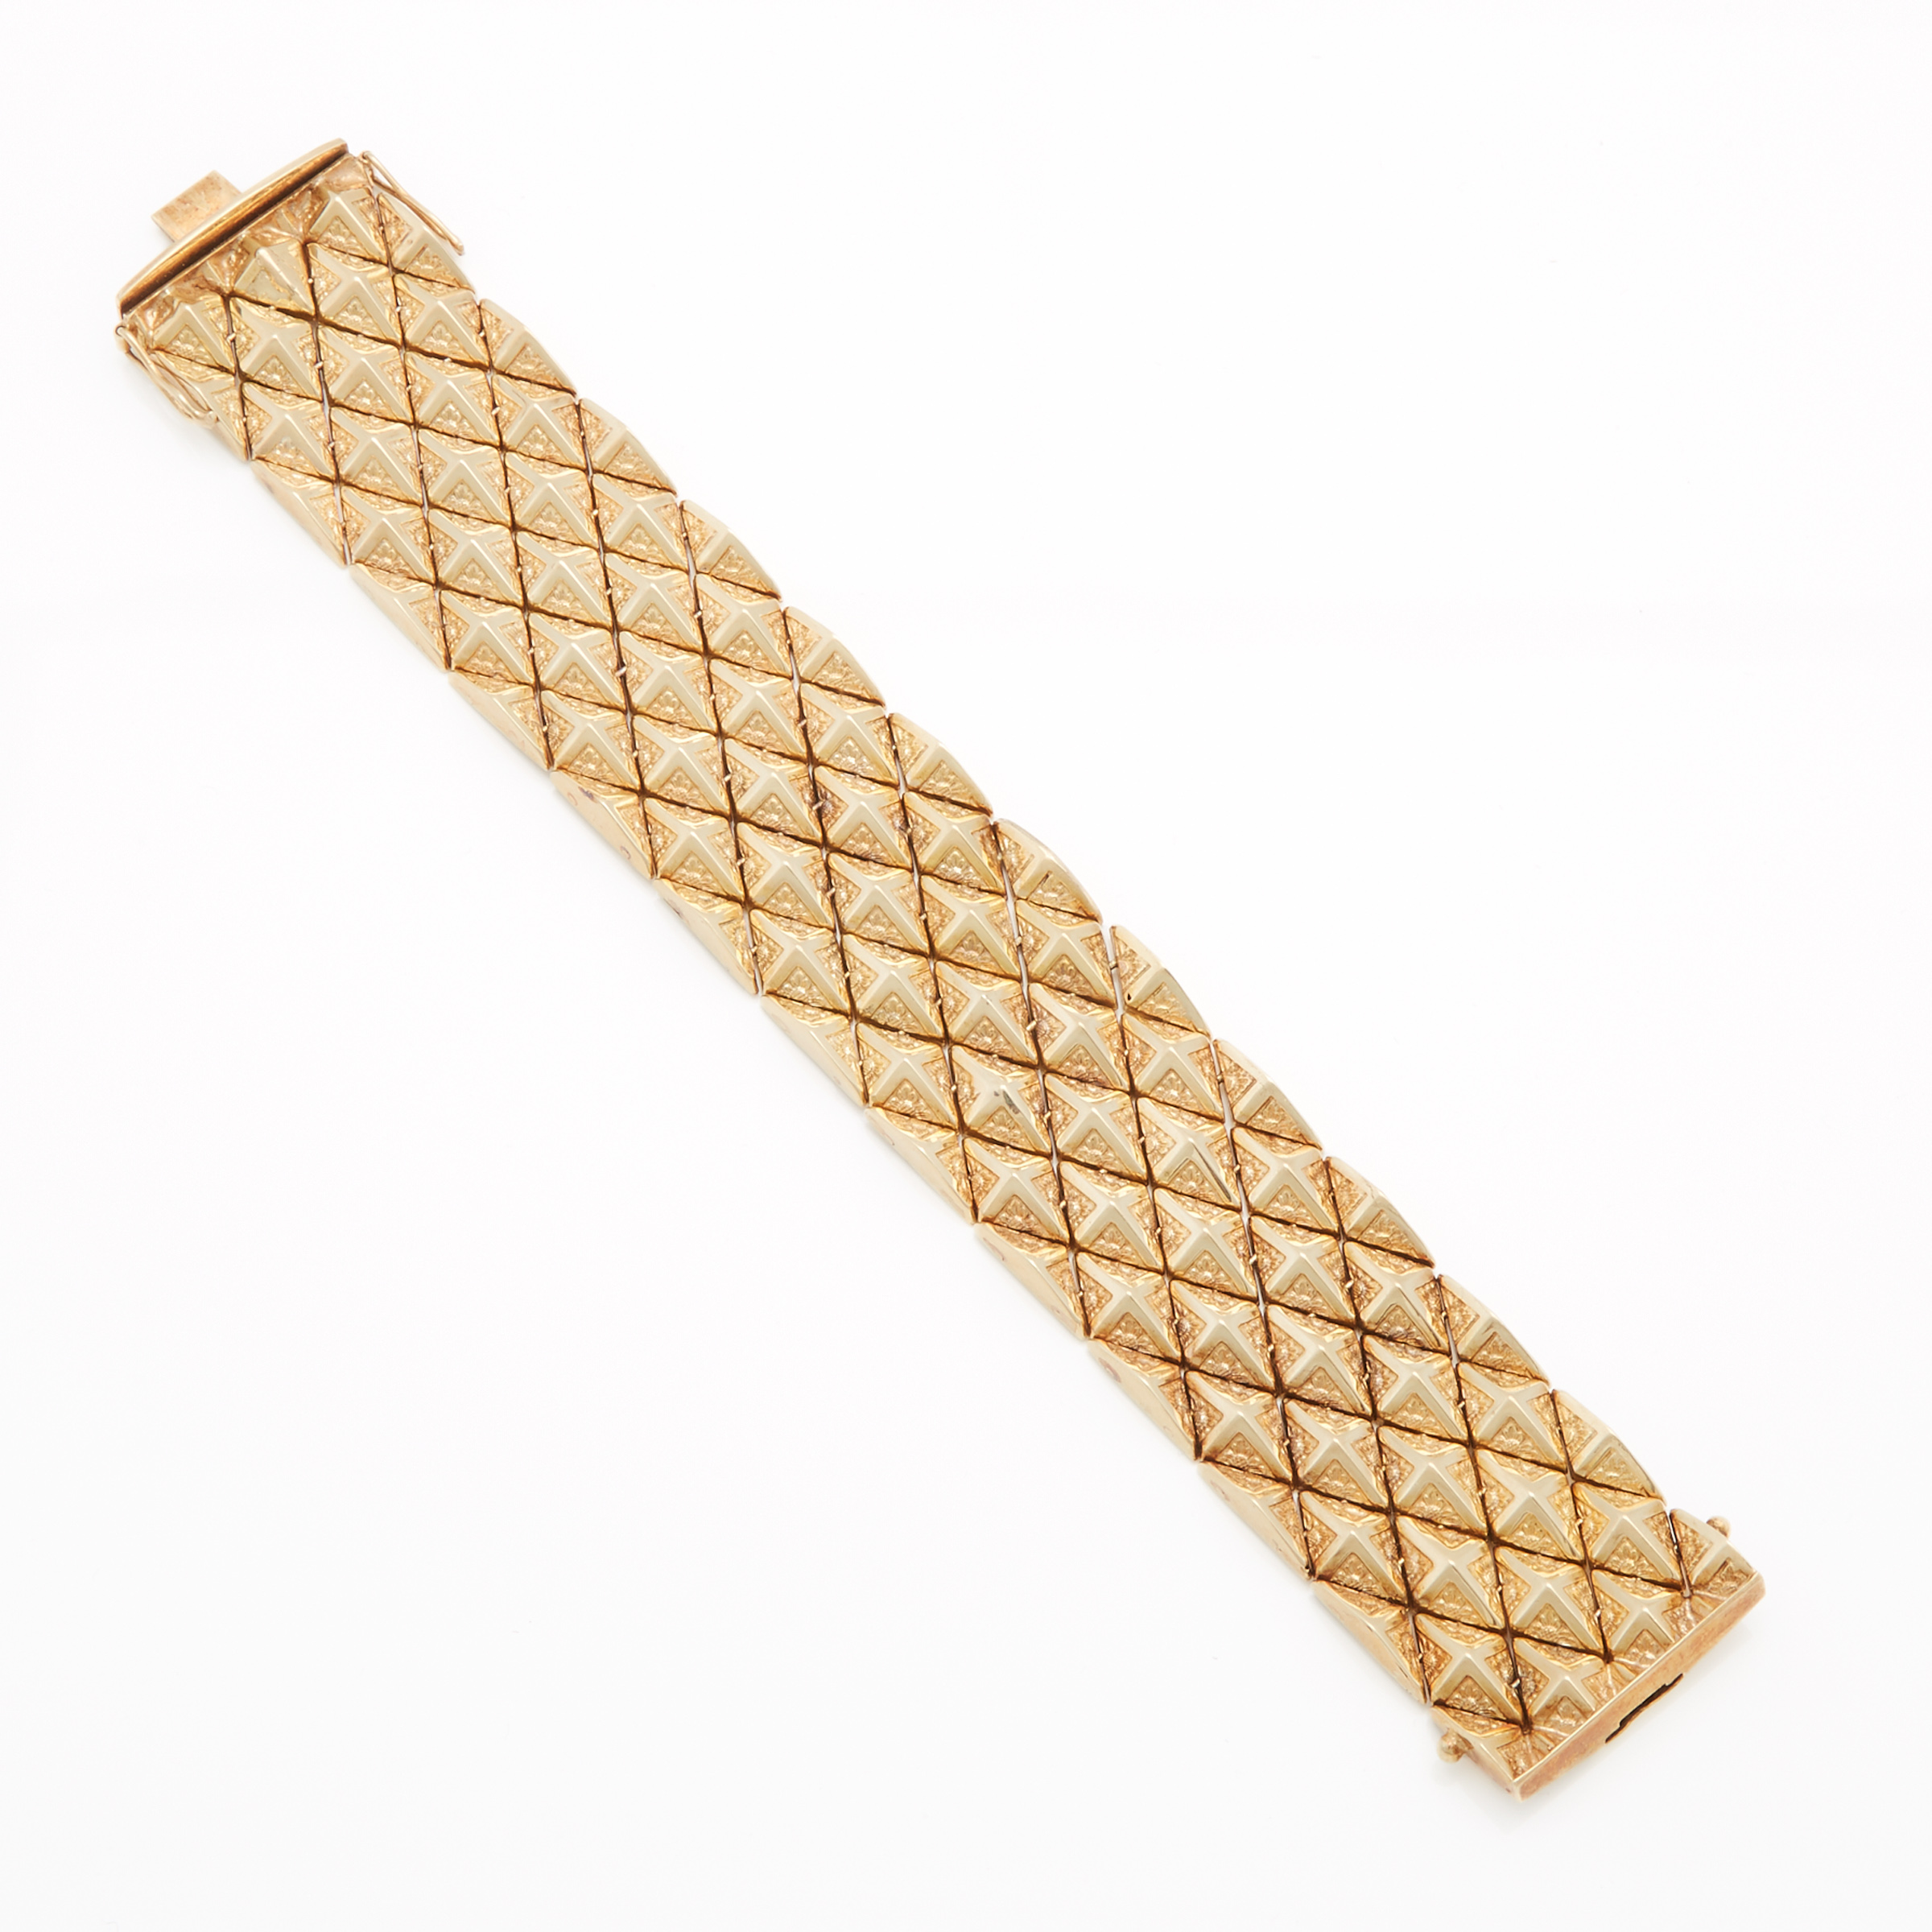 14k Yellow Gold Strap Bracelet